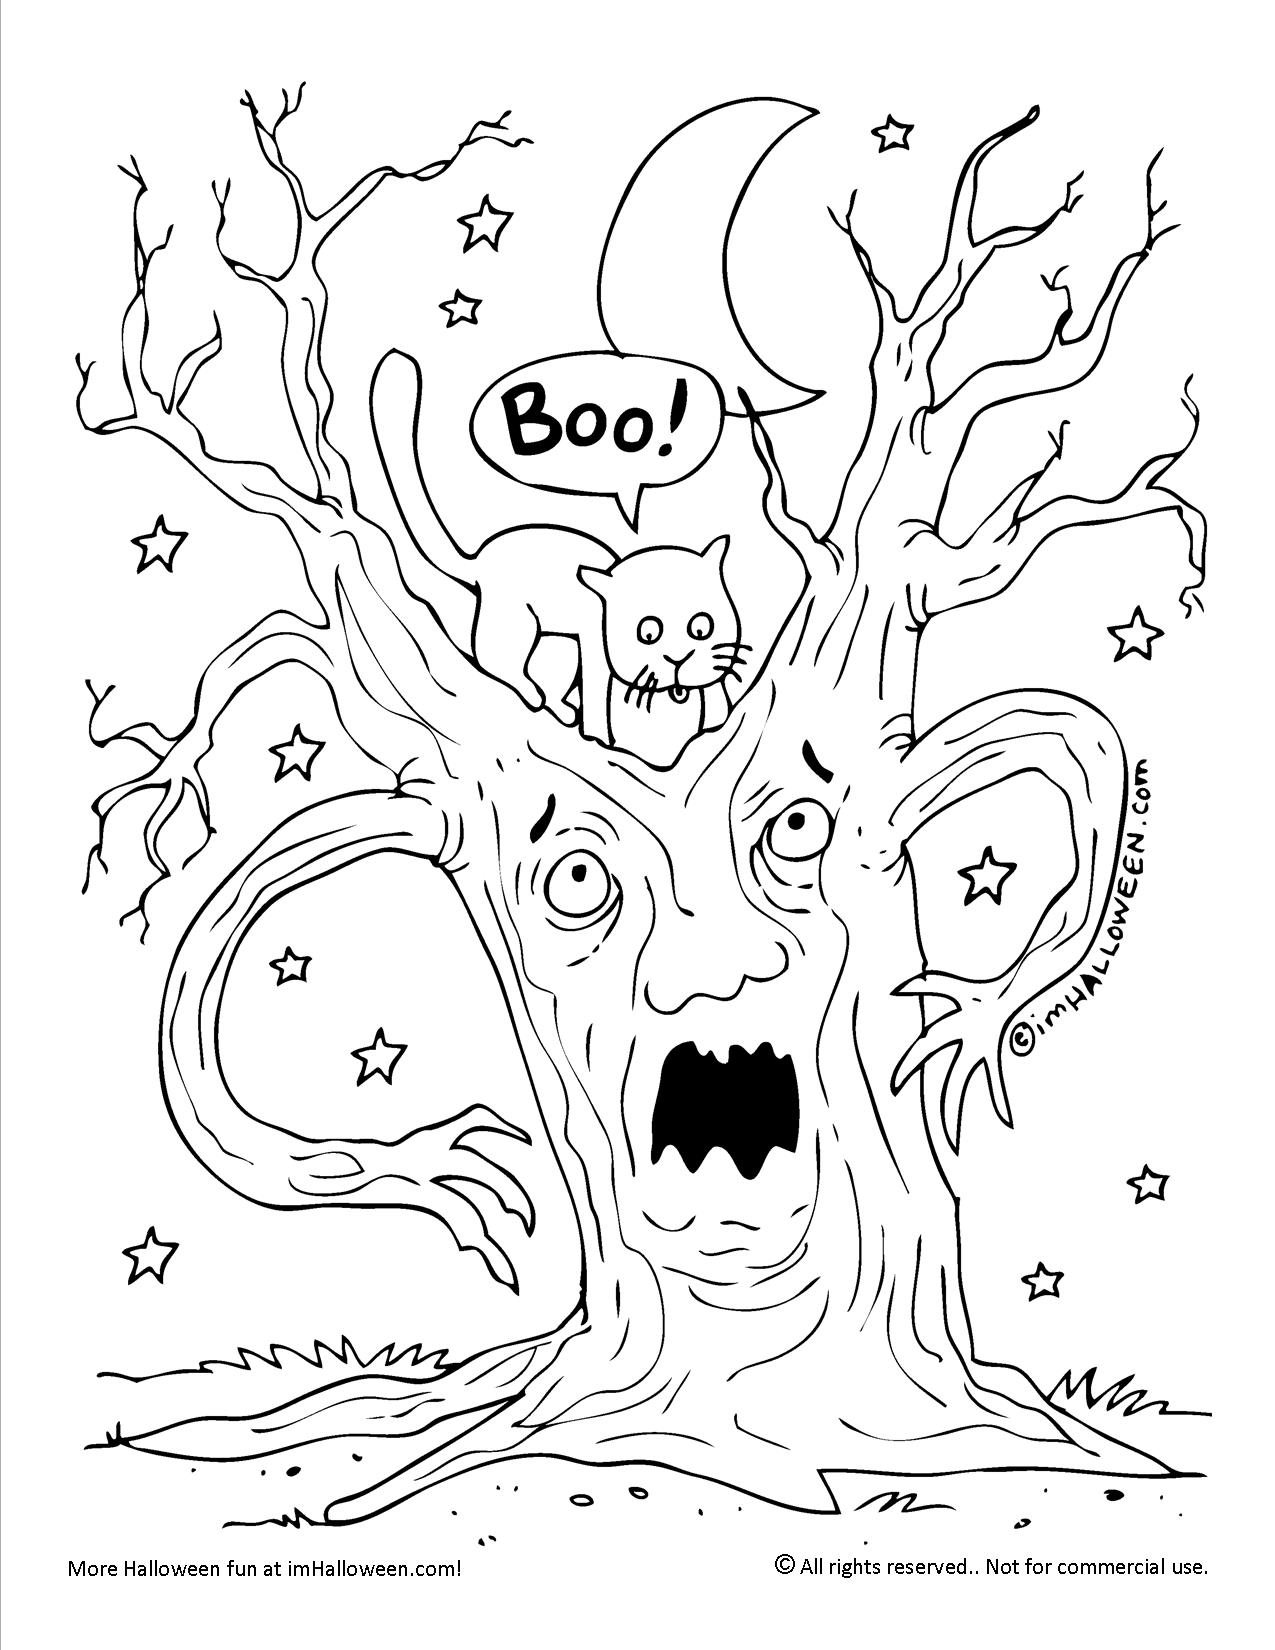 Halloween Spooky Tree Face.Scary Tree Halloween Coloring Page